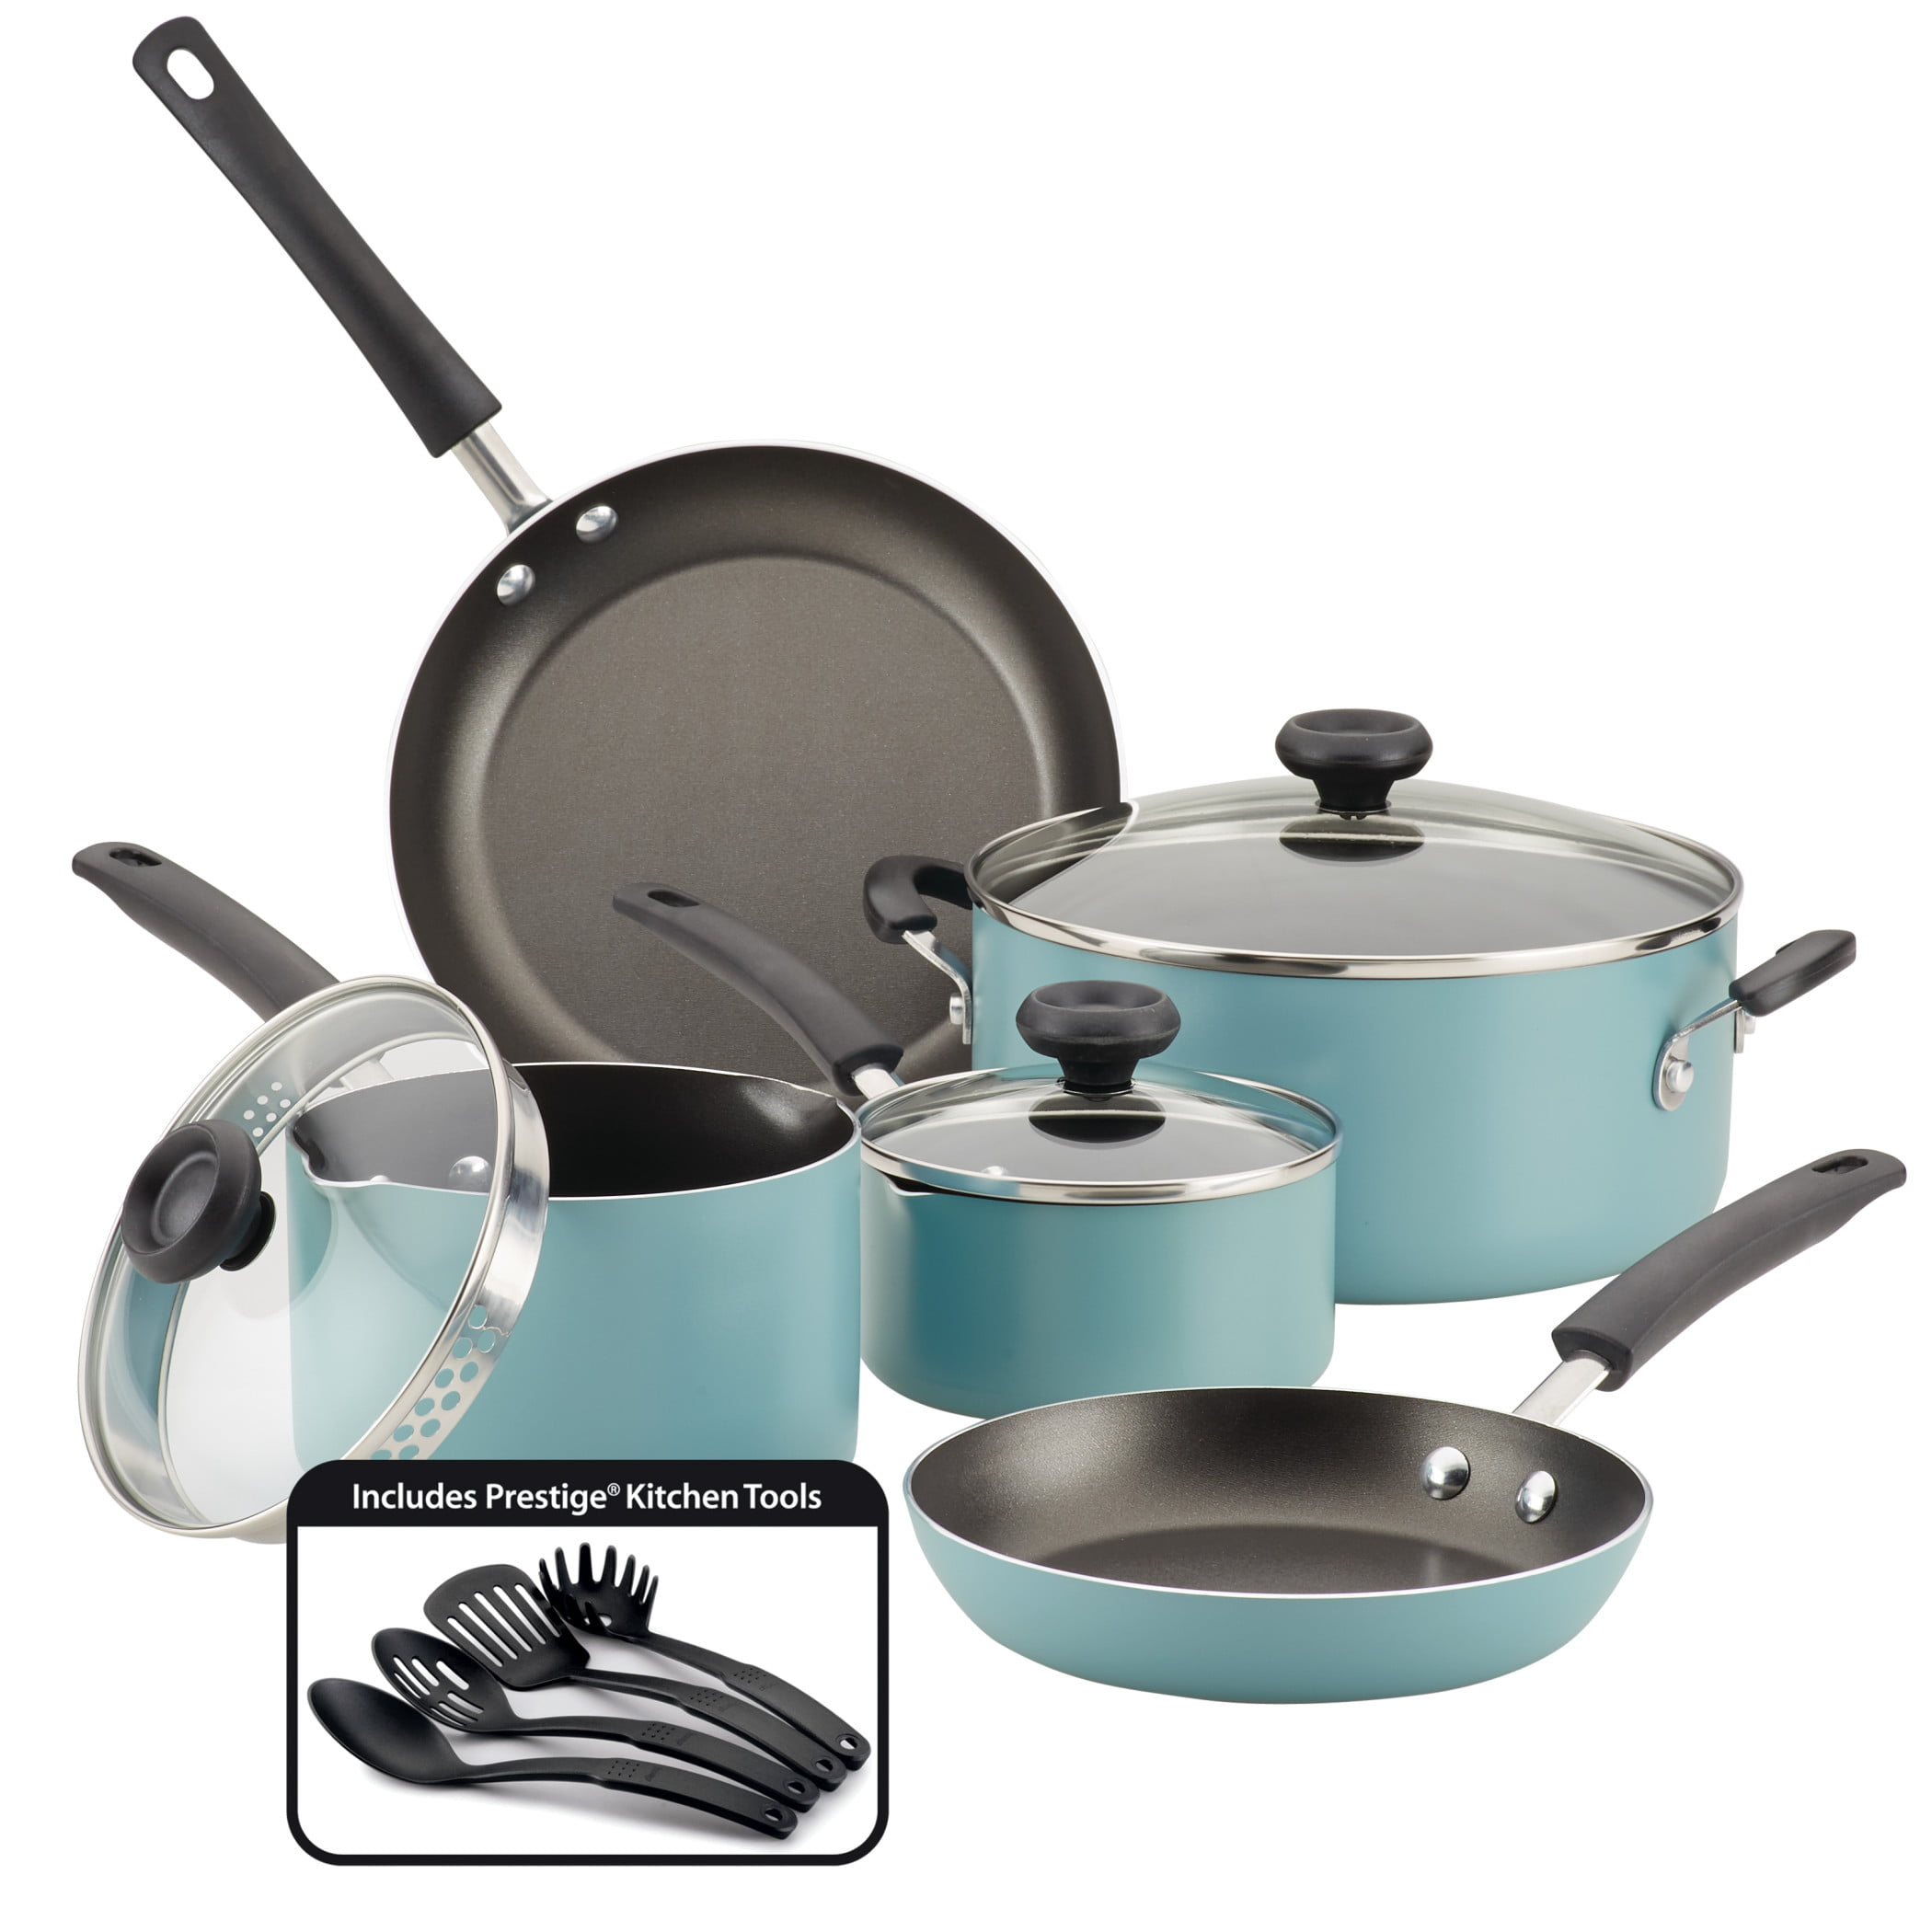 Farberware 12-Piece Easy Clean Nonstick Pots and Pans/Cookware Set, Aqua